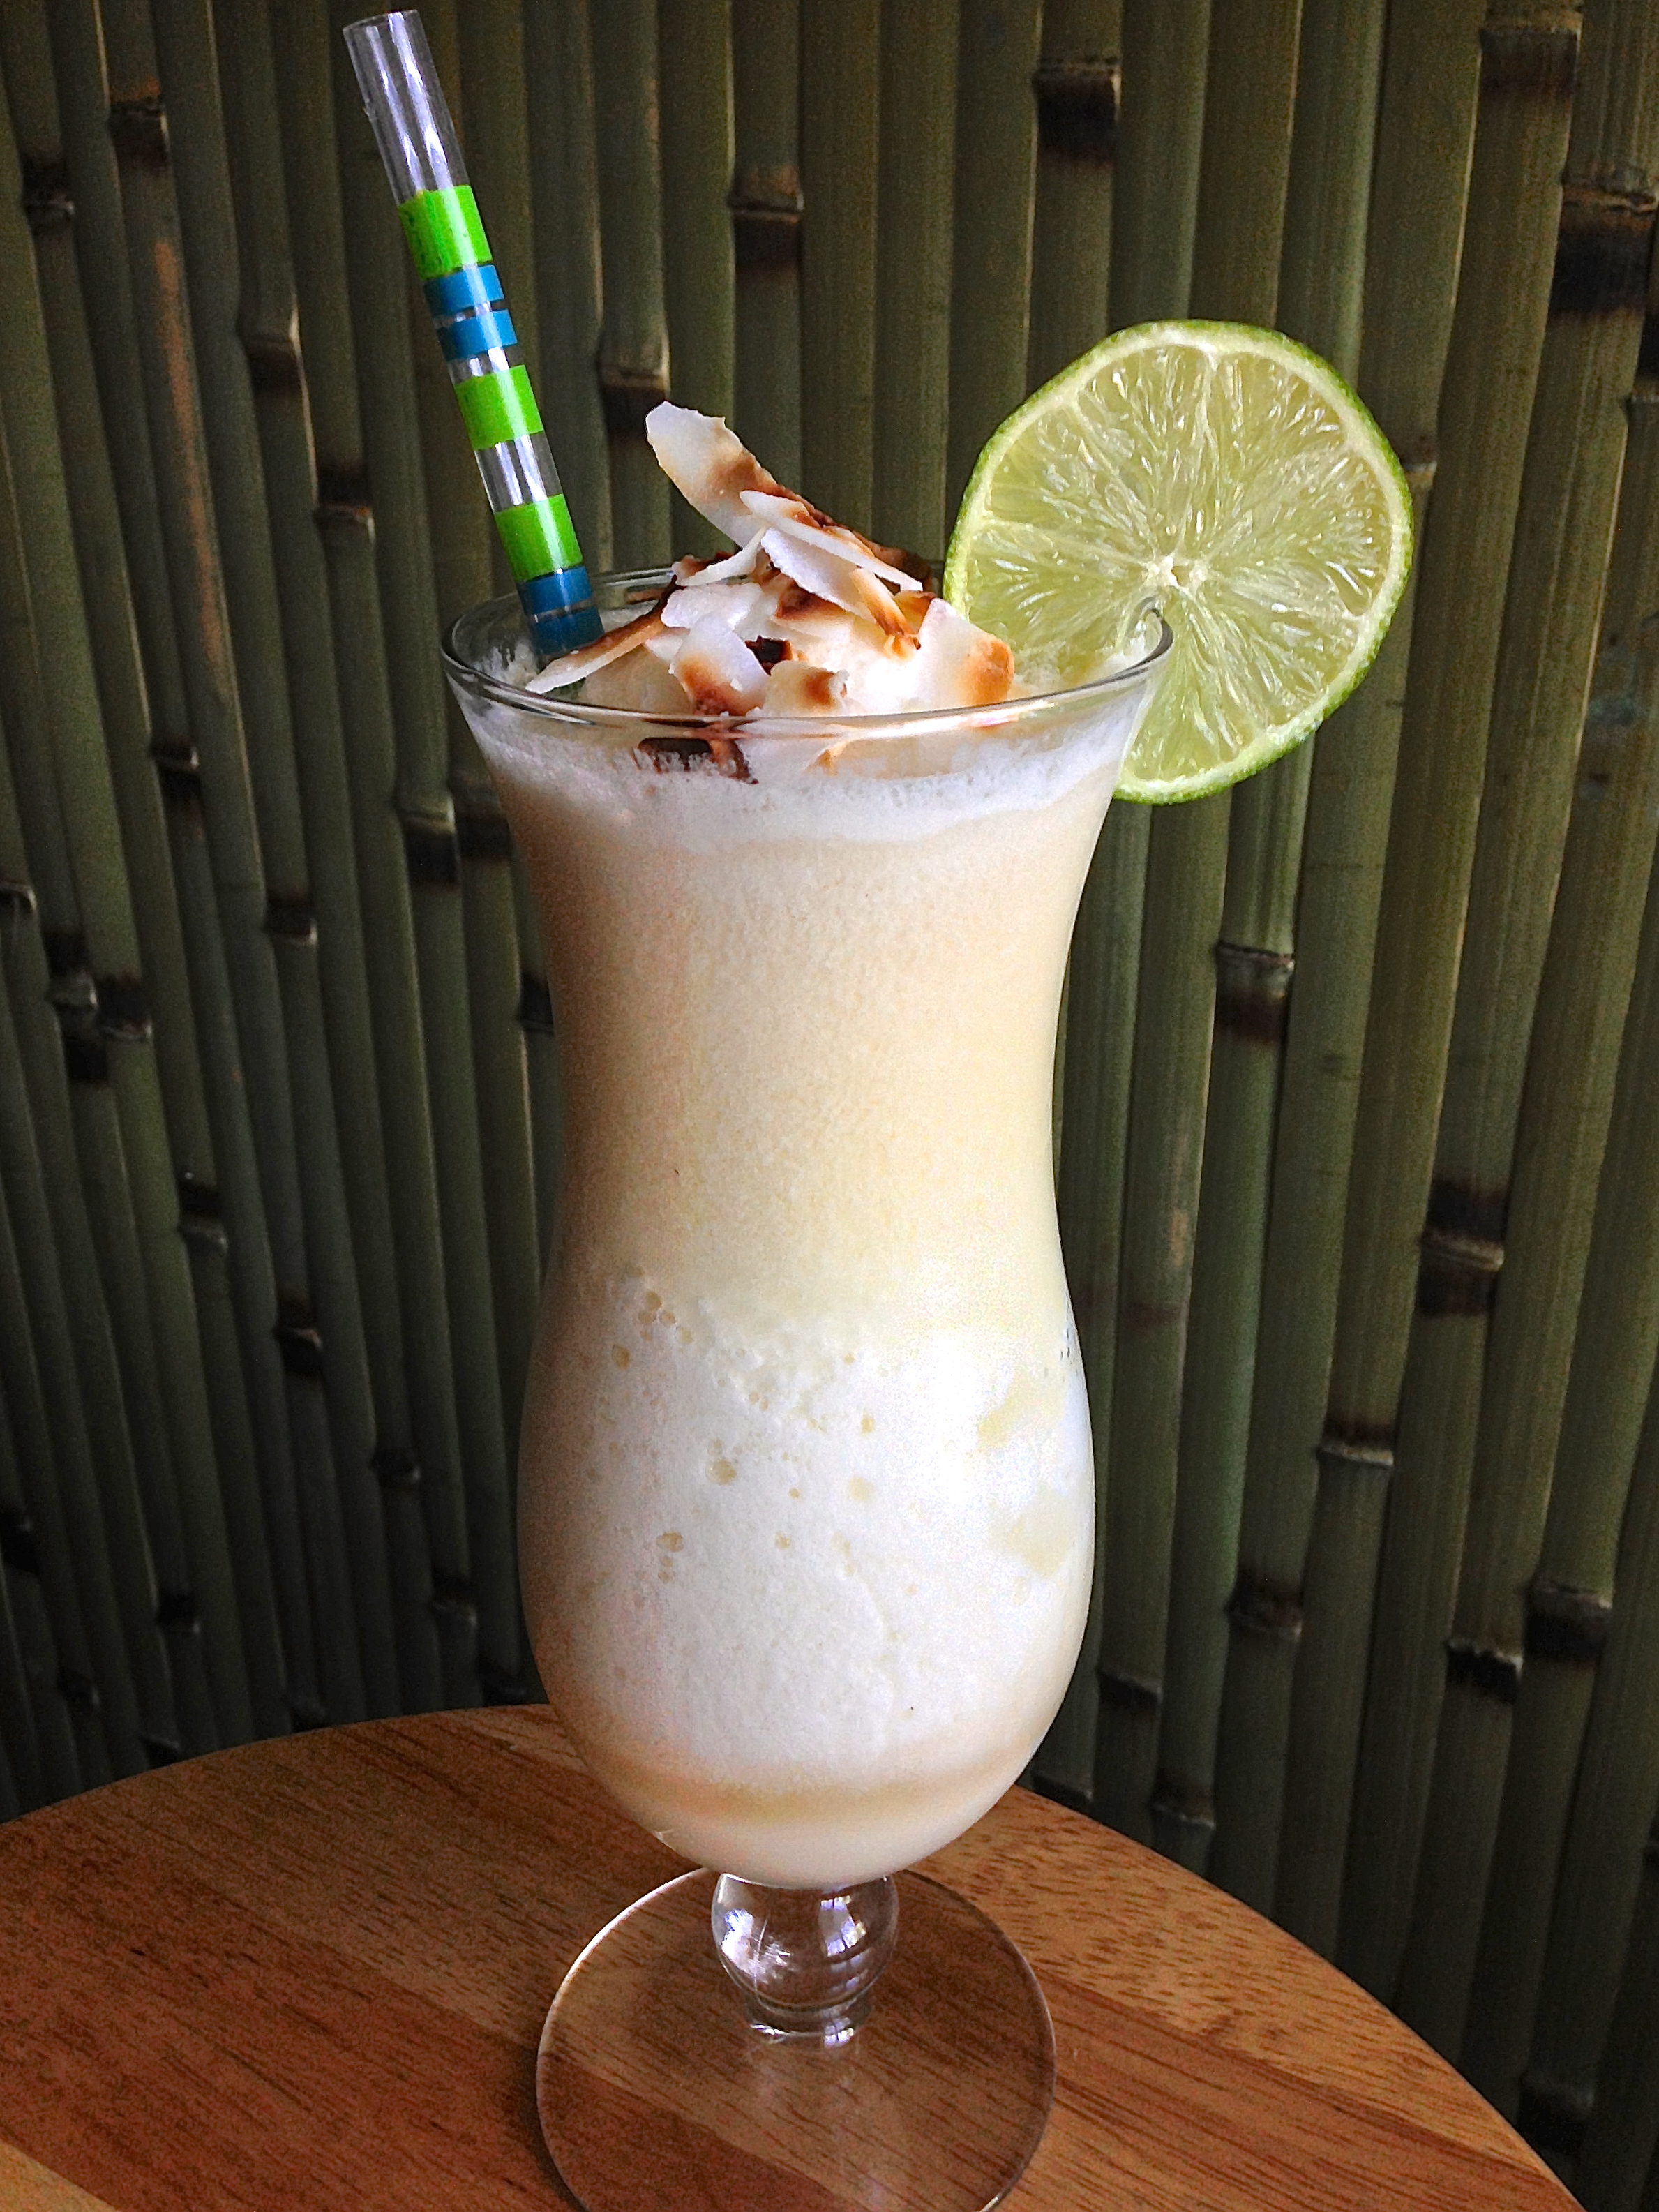 The Floridian Sinkhole was the result of marrying two of our most popular cocktails and blending them. Pineapple Mystery Drink and Coconut Mele were meant to be together.